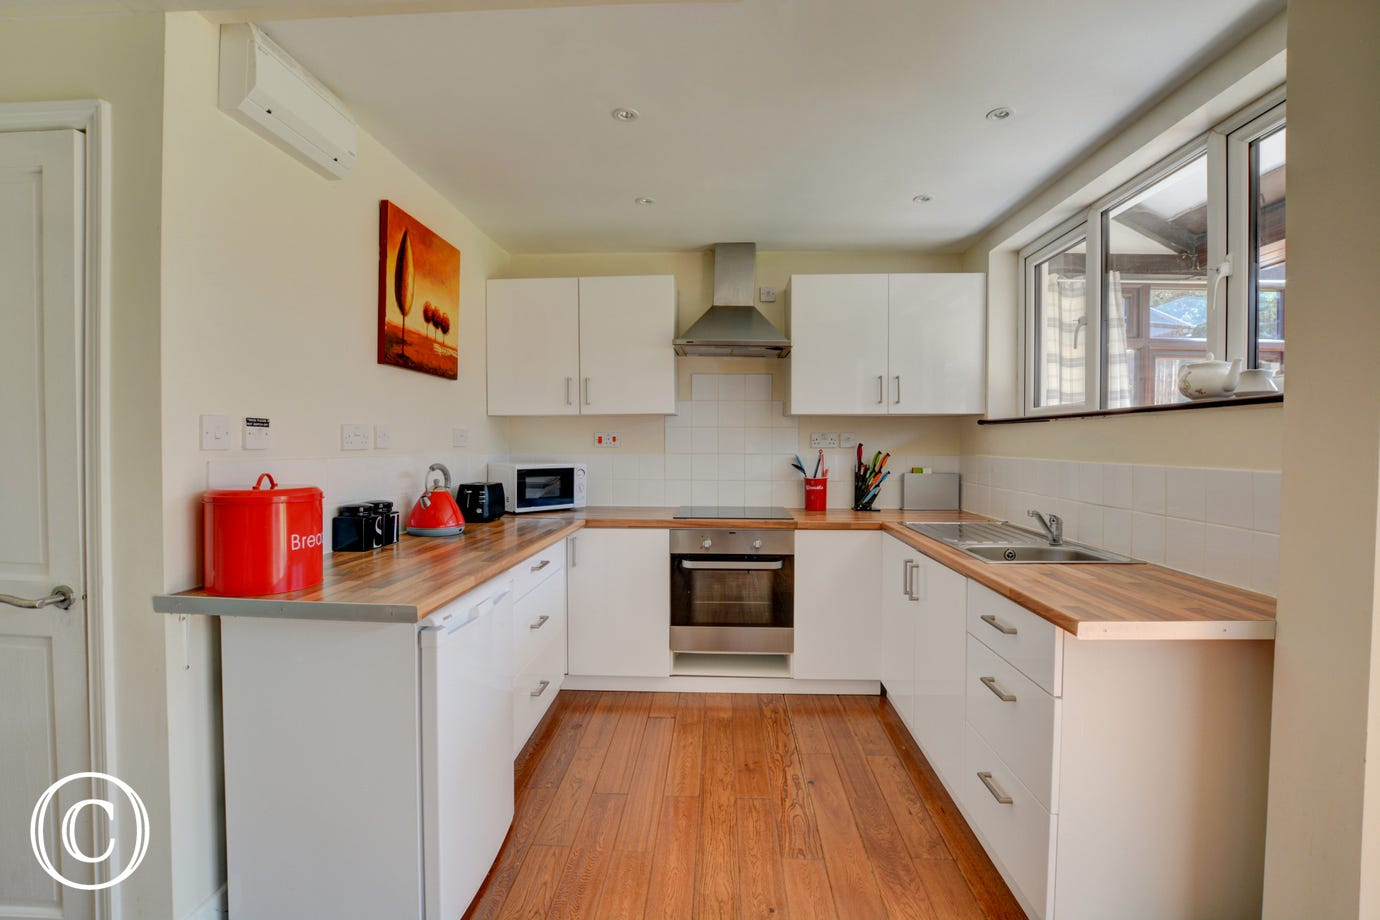 Fitted kitchen with electric double oven, electric hob, combination microwave and fridge